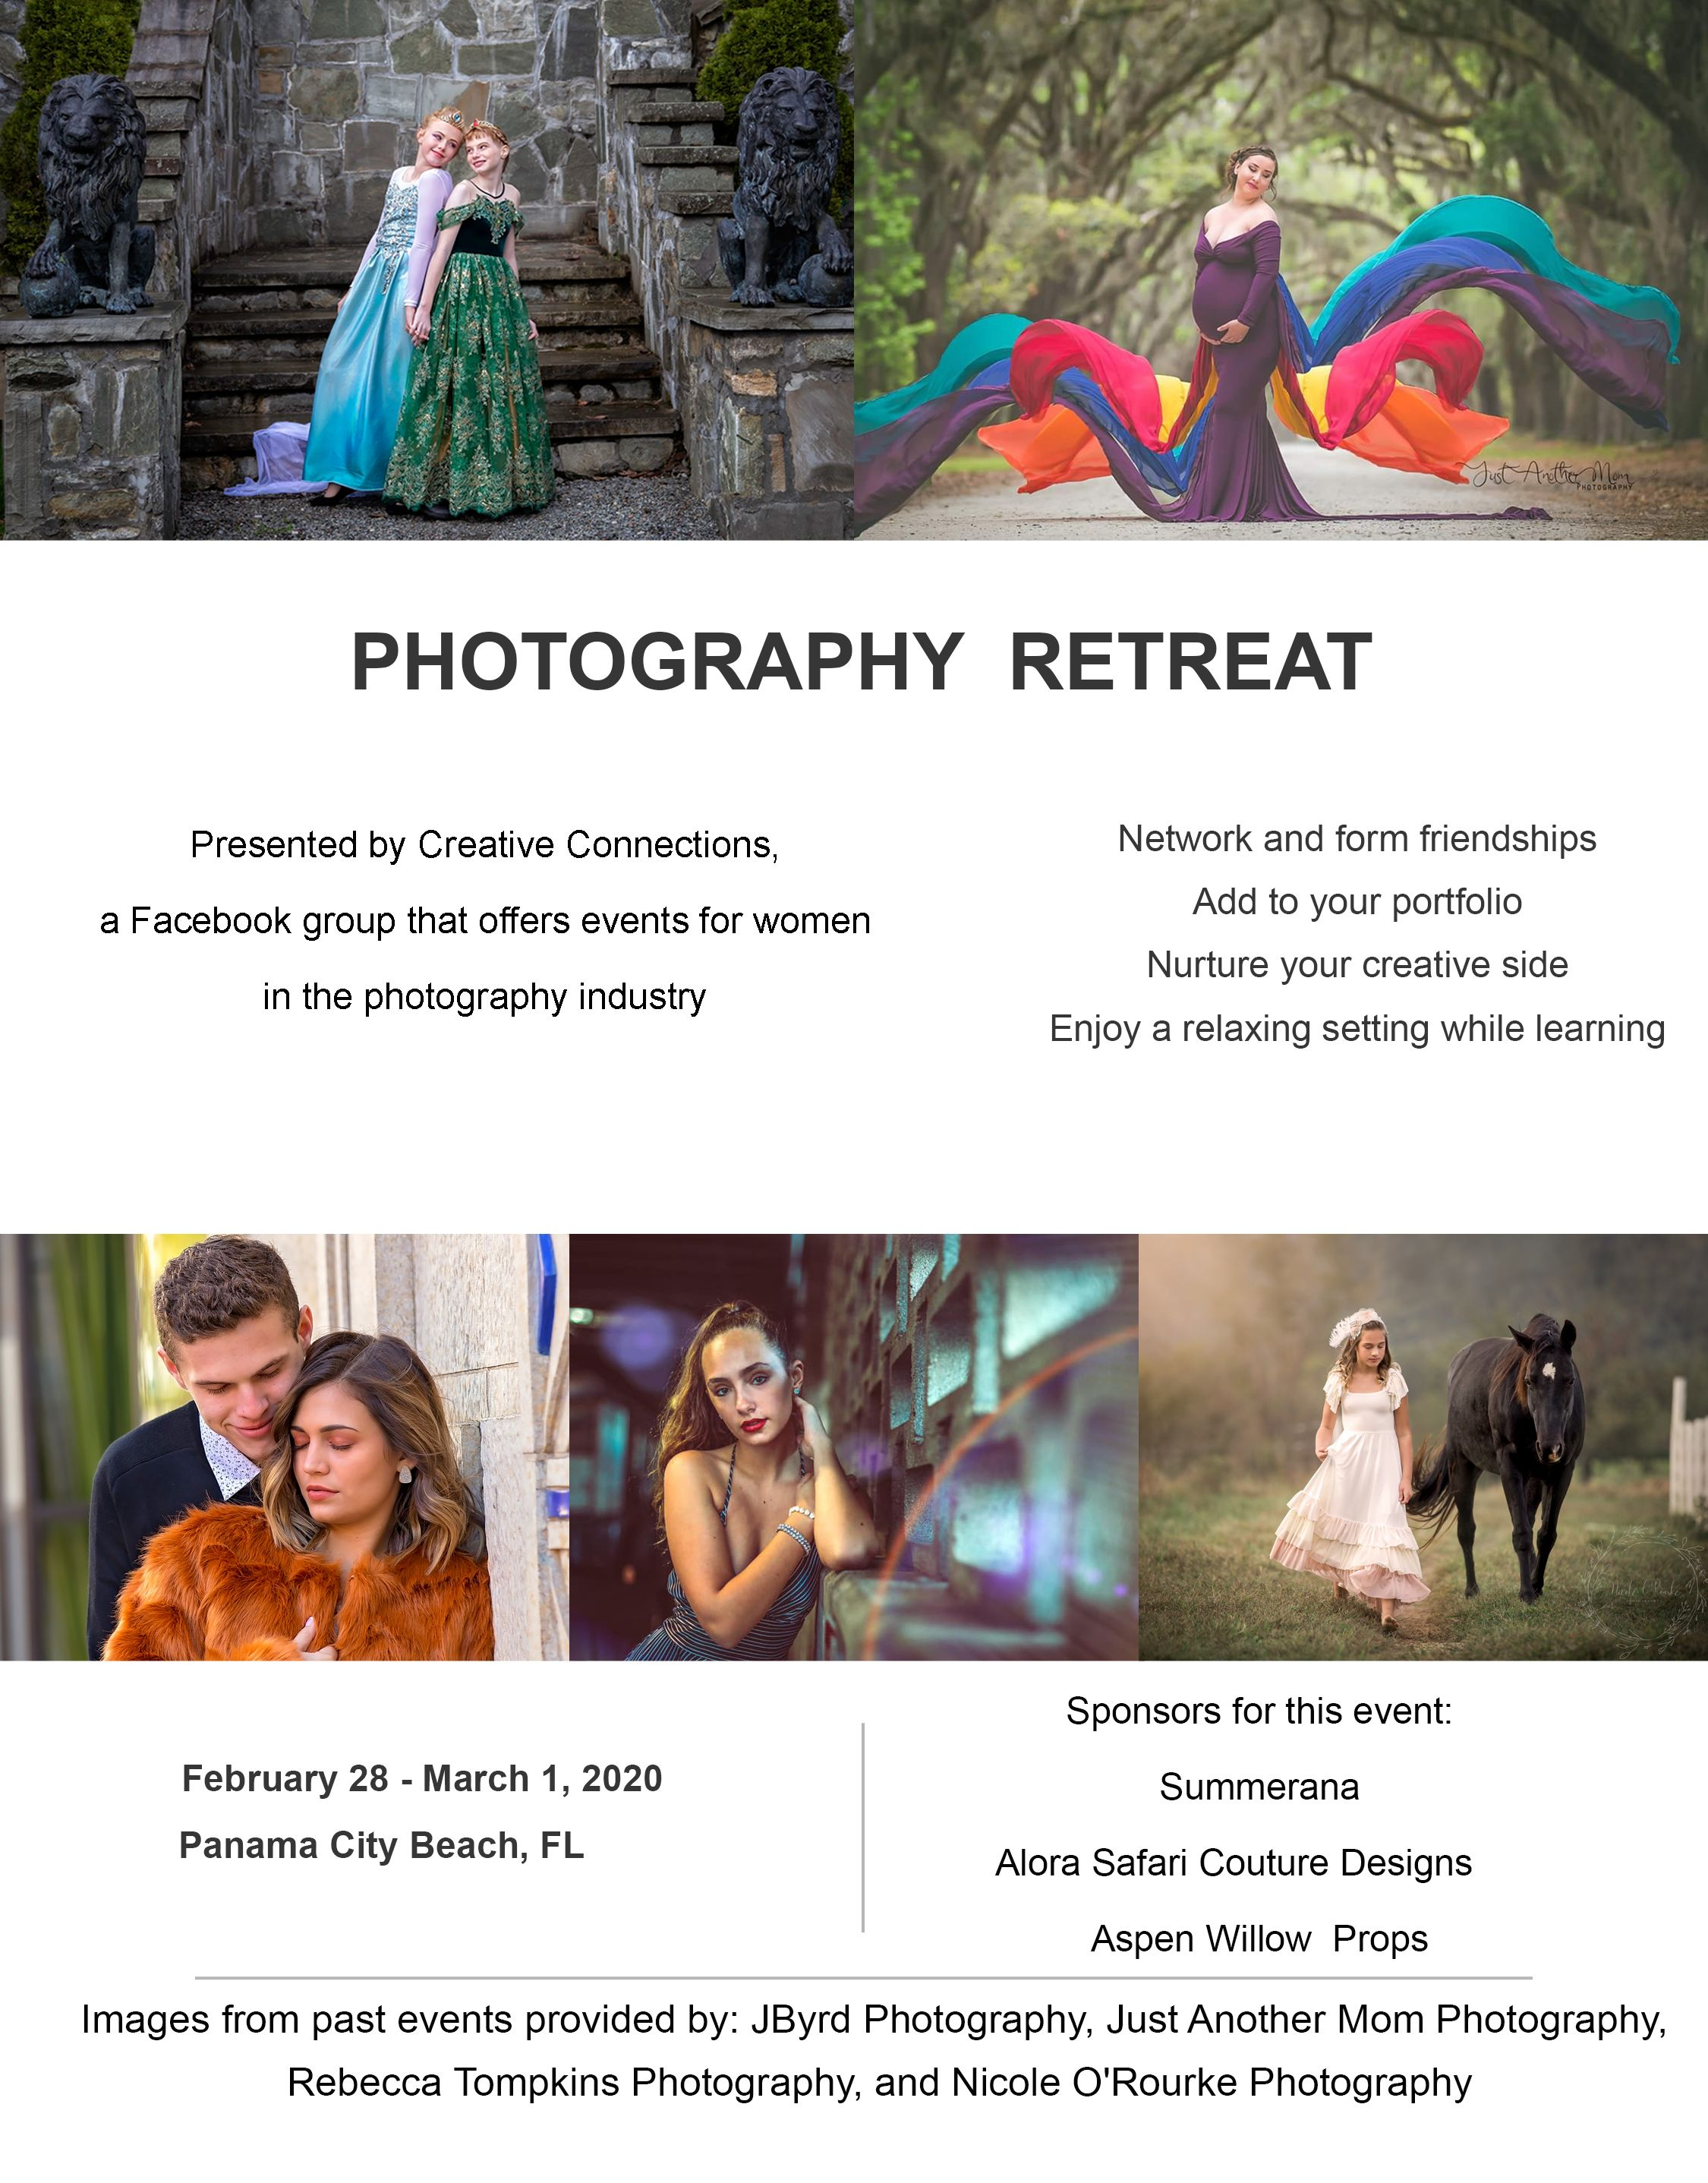 We Are Stoked To Be A Sponsor In Jbyrd Photography S Photography Retreat In Panama City Beach Fl February 28 In 2020 Panama City Beach Photography Panama City Panama